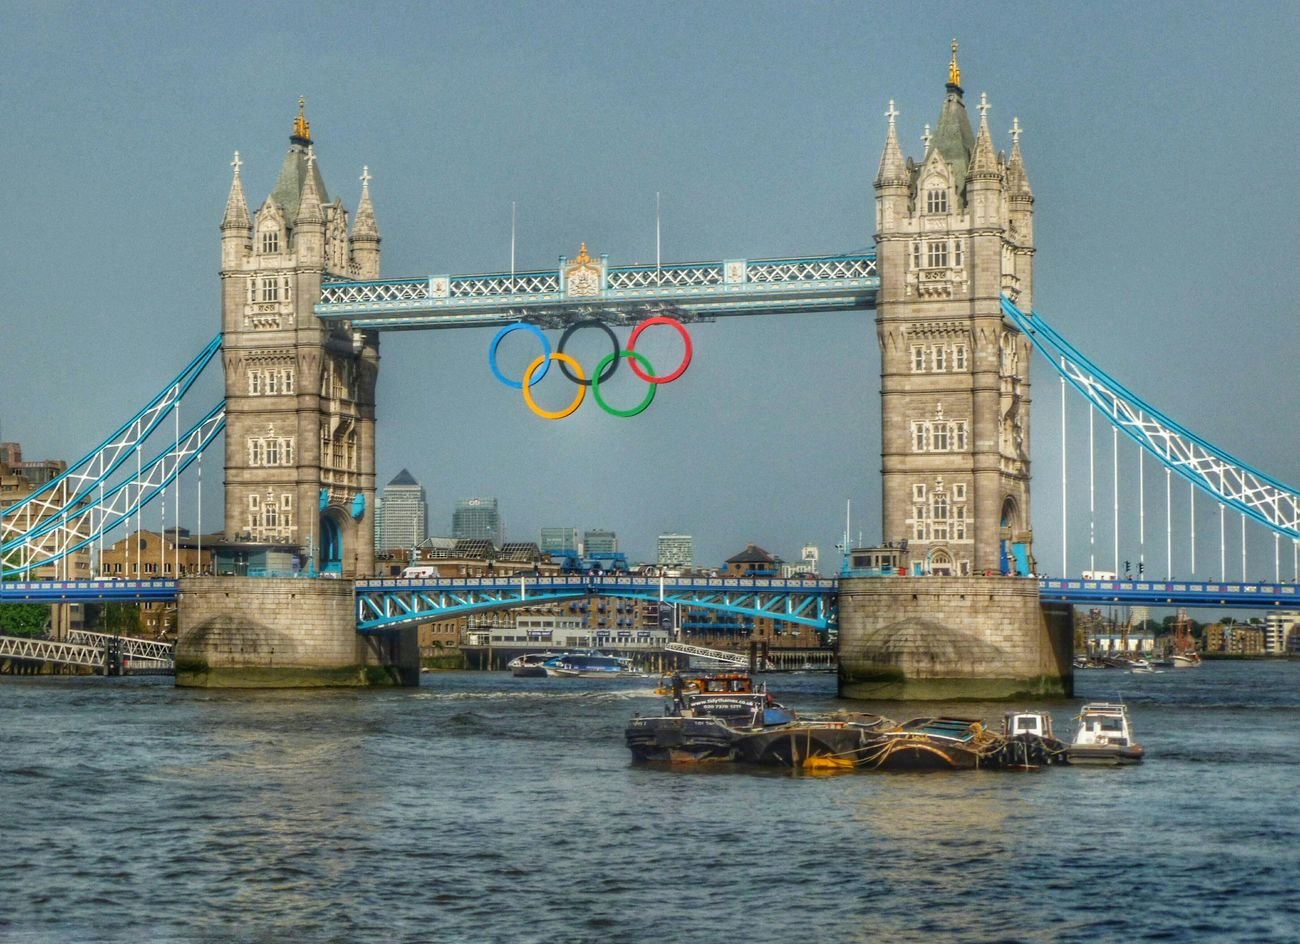 London Bridge is 'ringing'. London LondomOlympics2012 Londonbridge Thames Olympicgames Olympic Rings Europe Beauty